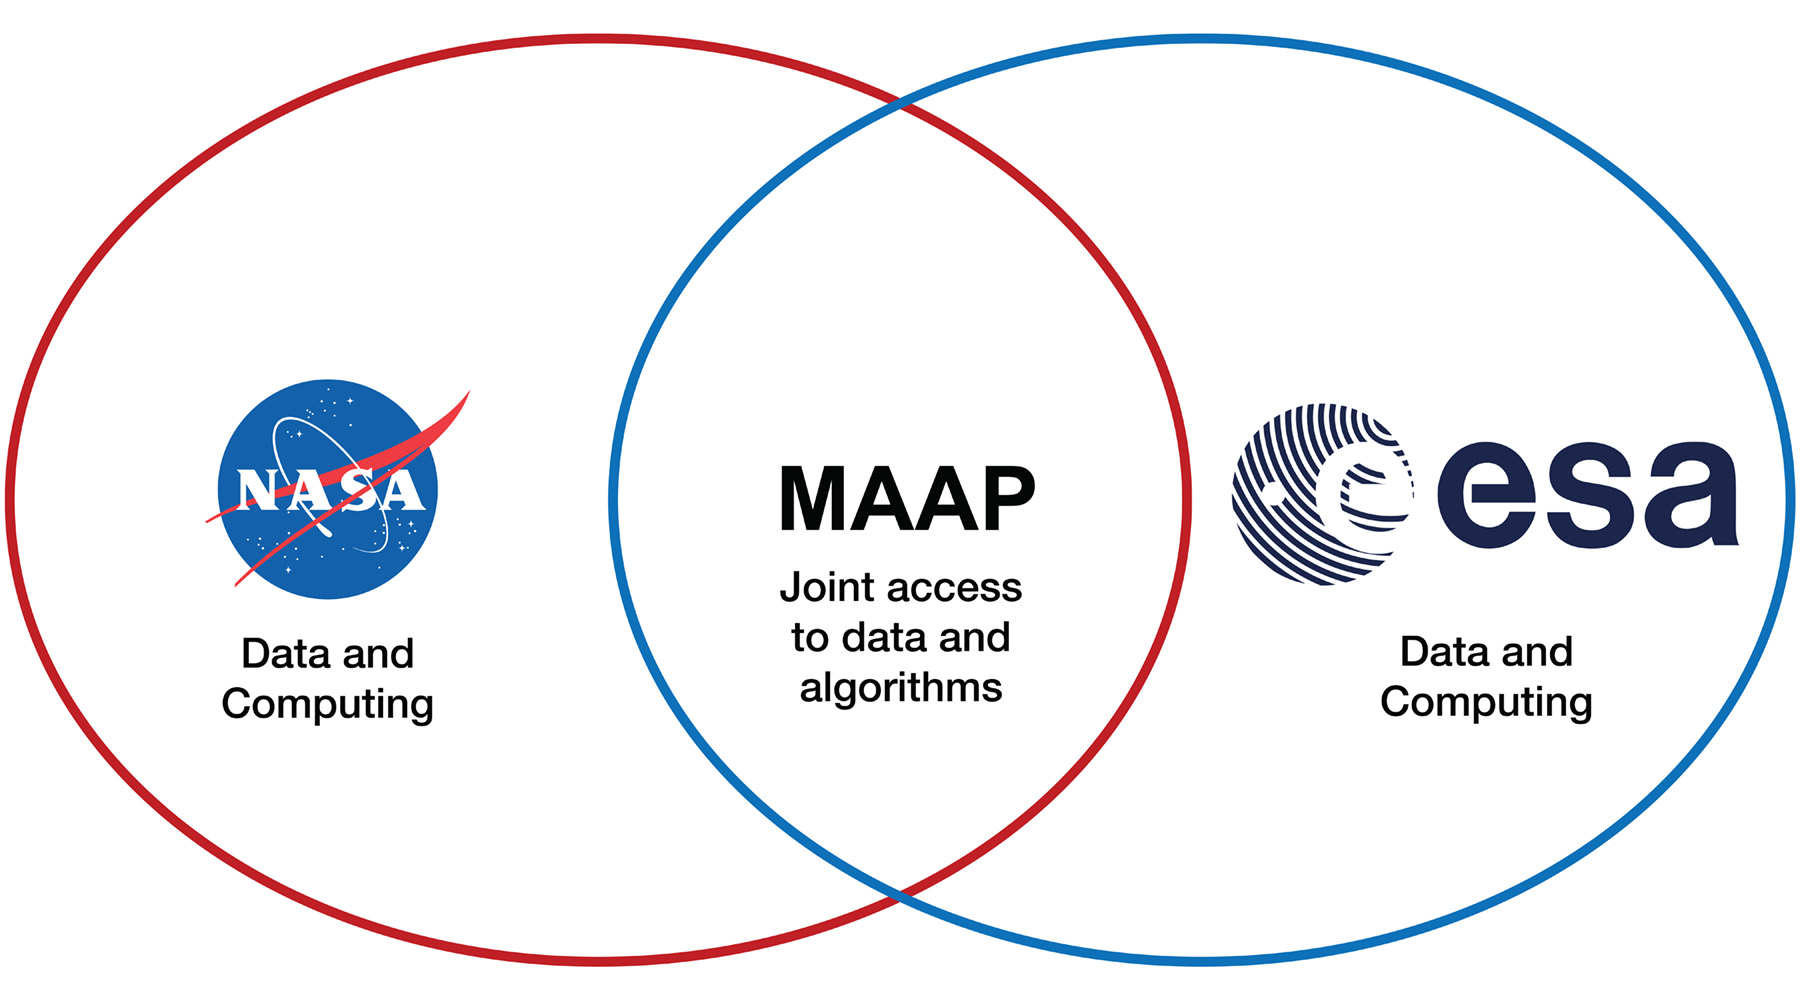 Image with interlocking rings showing NASA-ESA interaction in MAAP